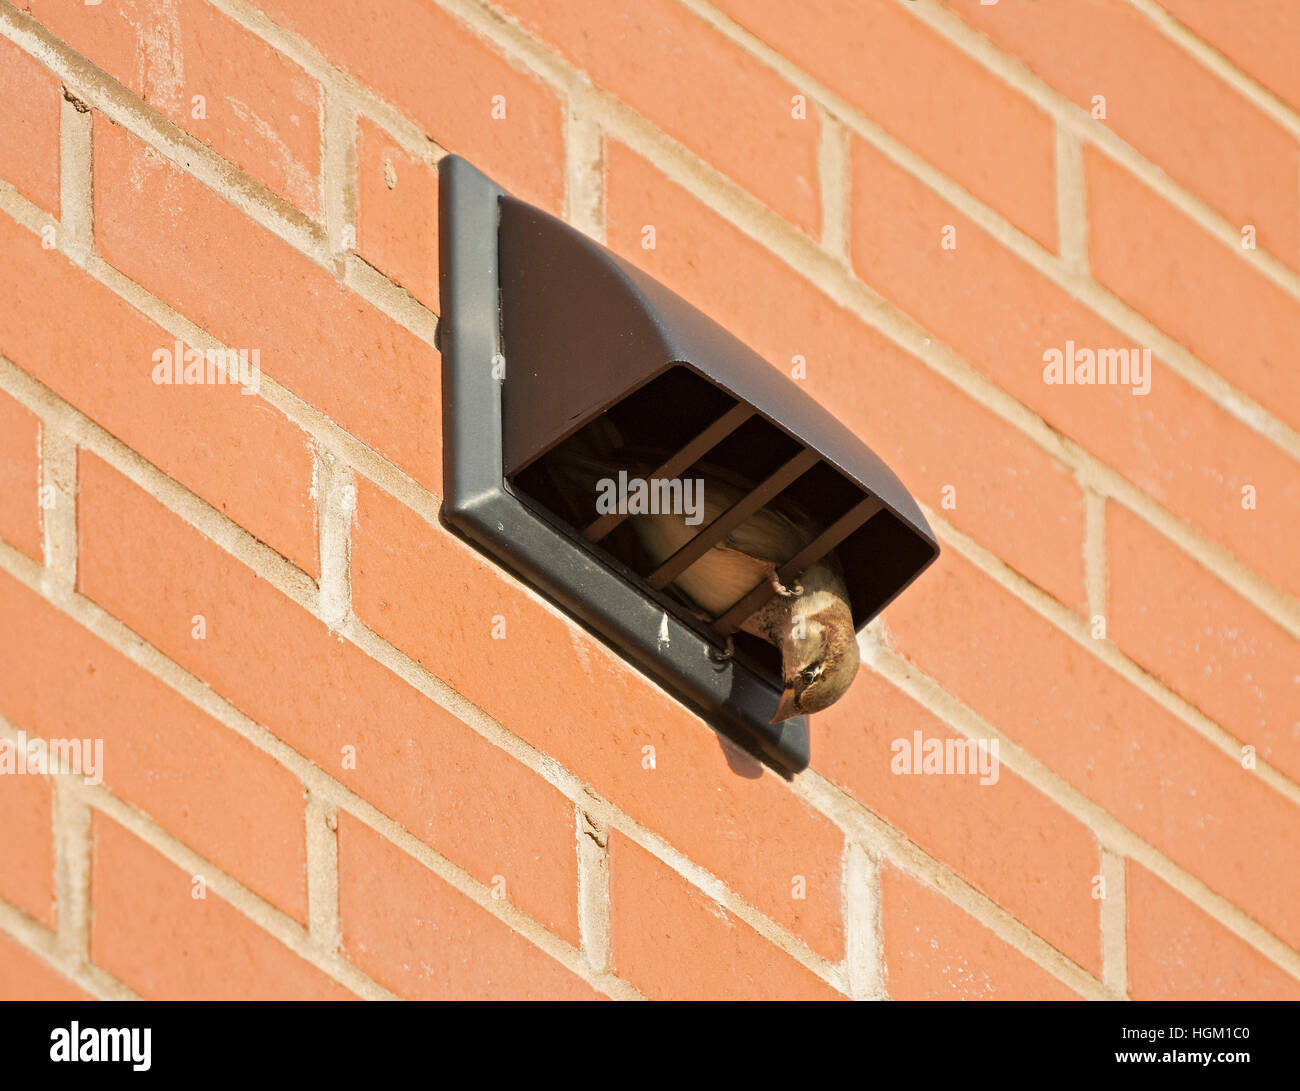 House Sparrow, passer domesticus, nesting in air vent. Lancashire, England, UK - Stock Image